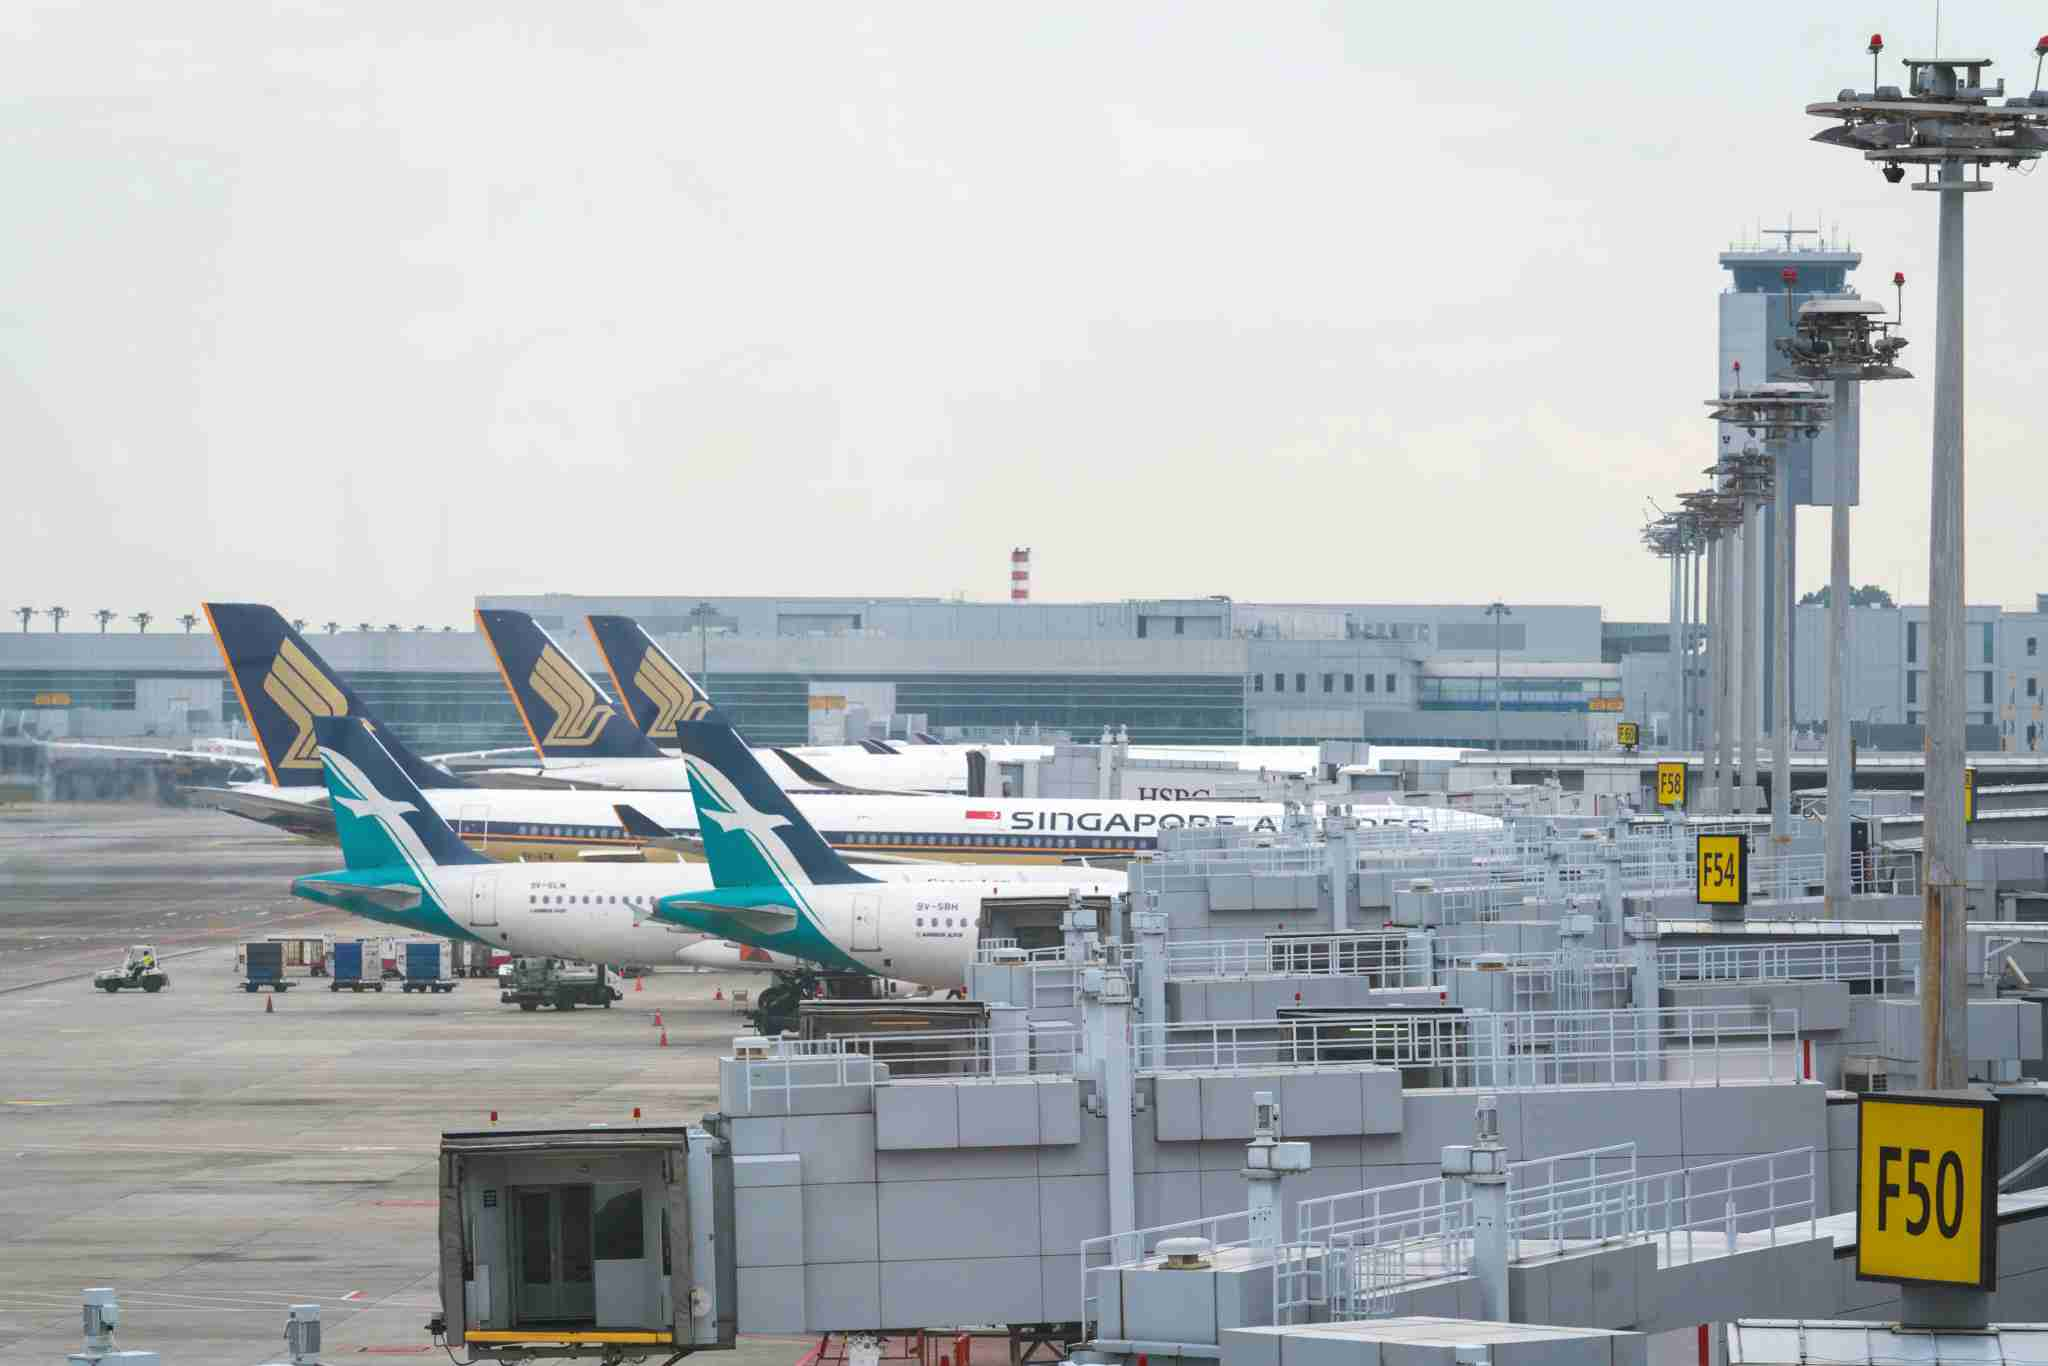 Singapore Airlines and SilkAir aircraft at Singapore-Changi Airport (SIN) (Image by Nicky Loh/Bloomberg via Getty Images)